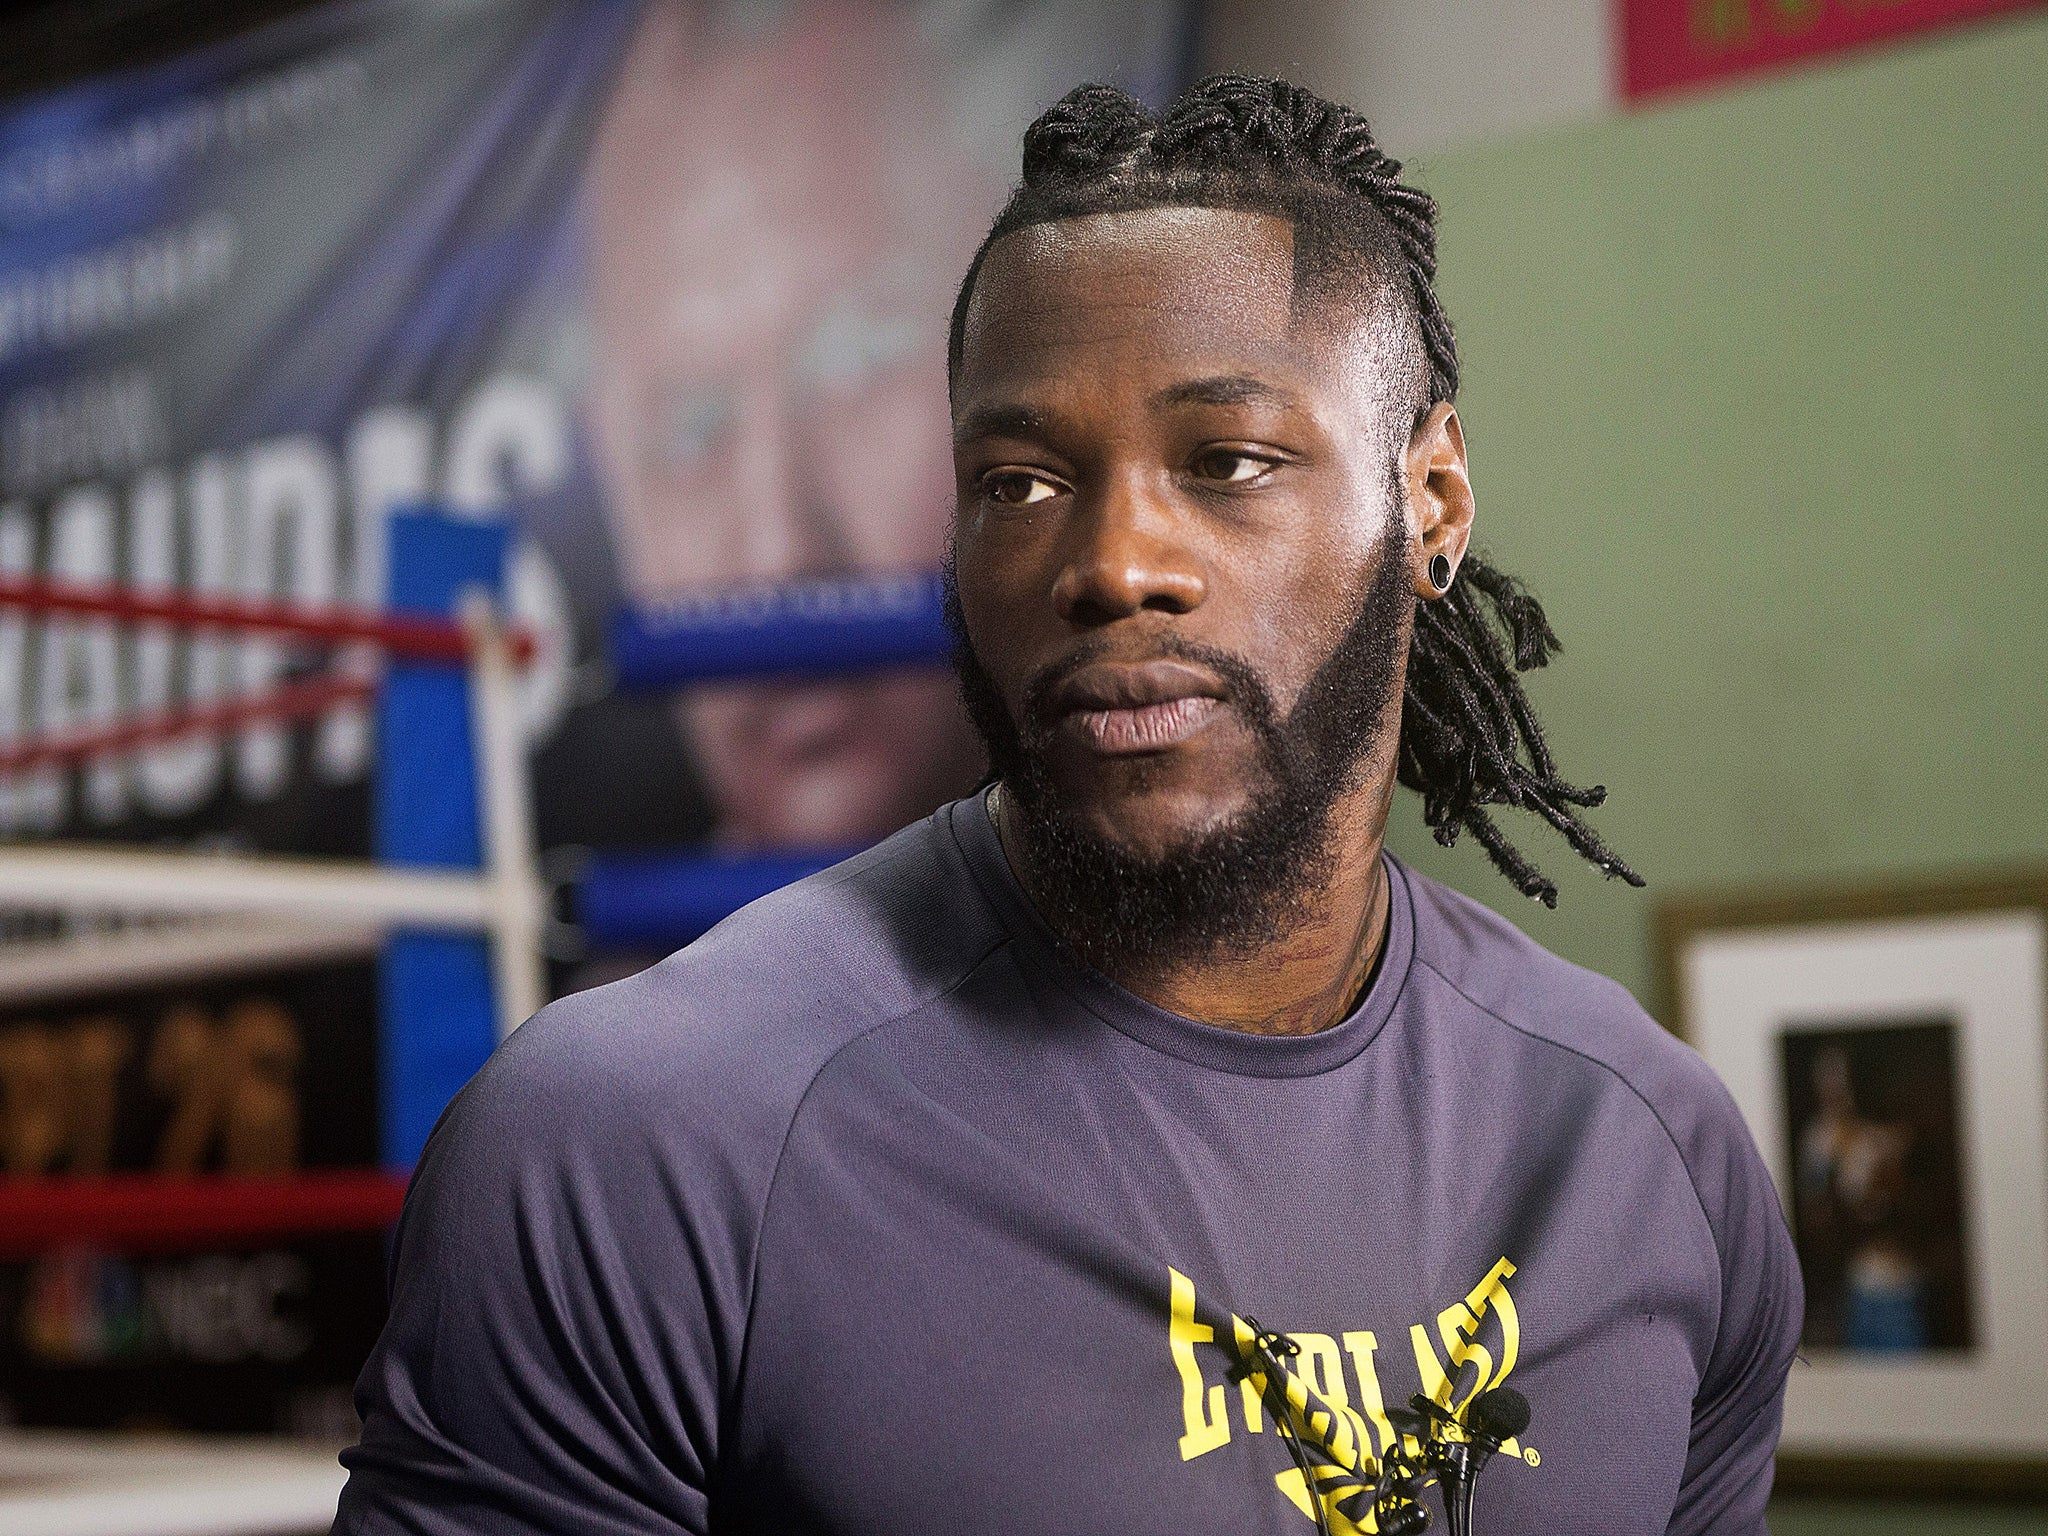 deontay wilder - photo #28